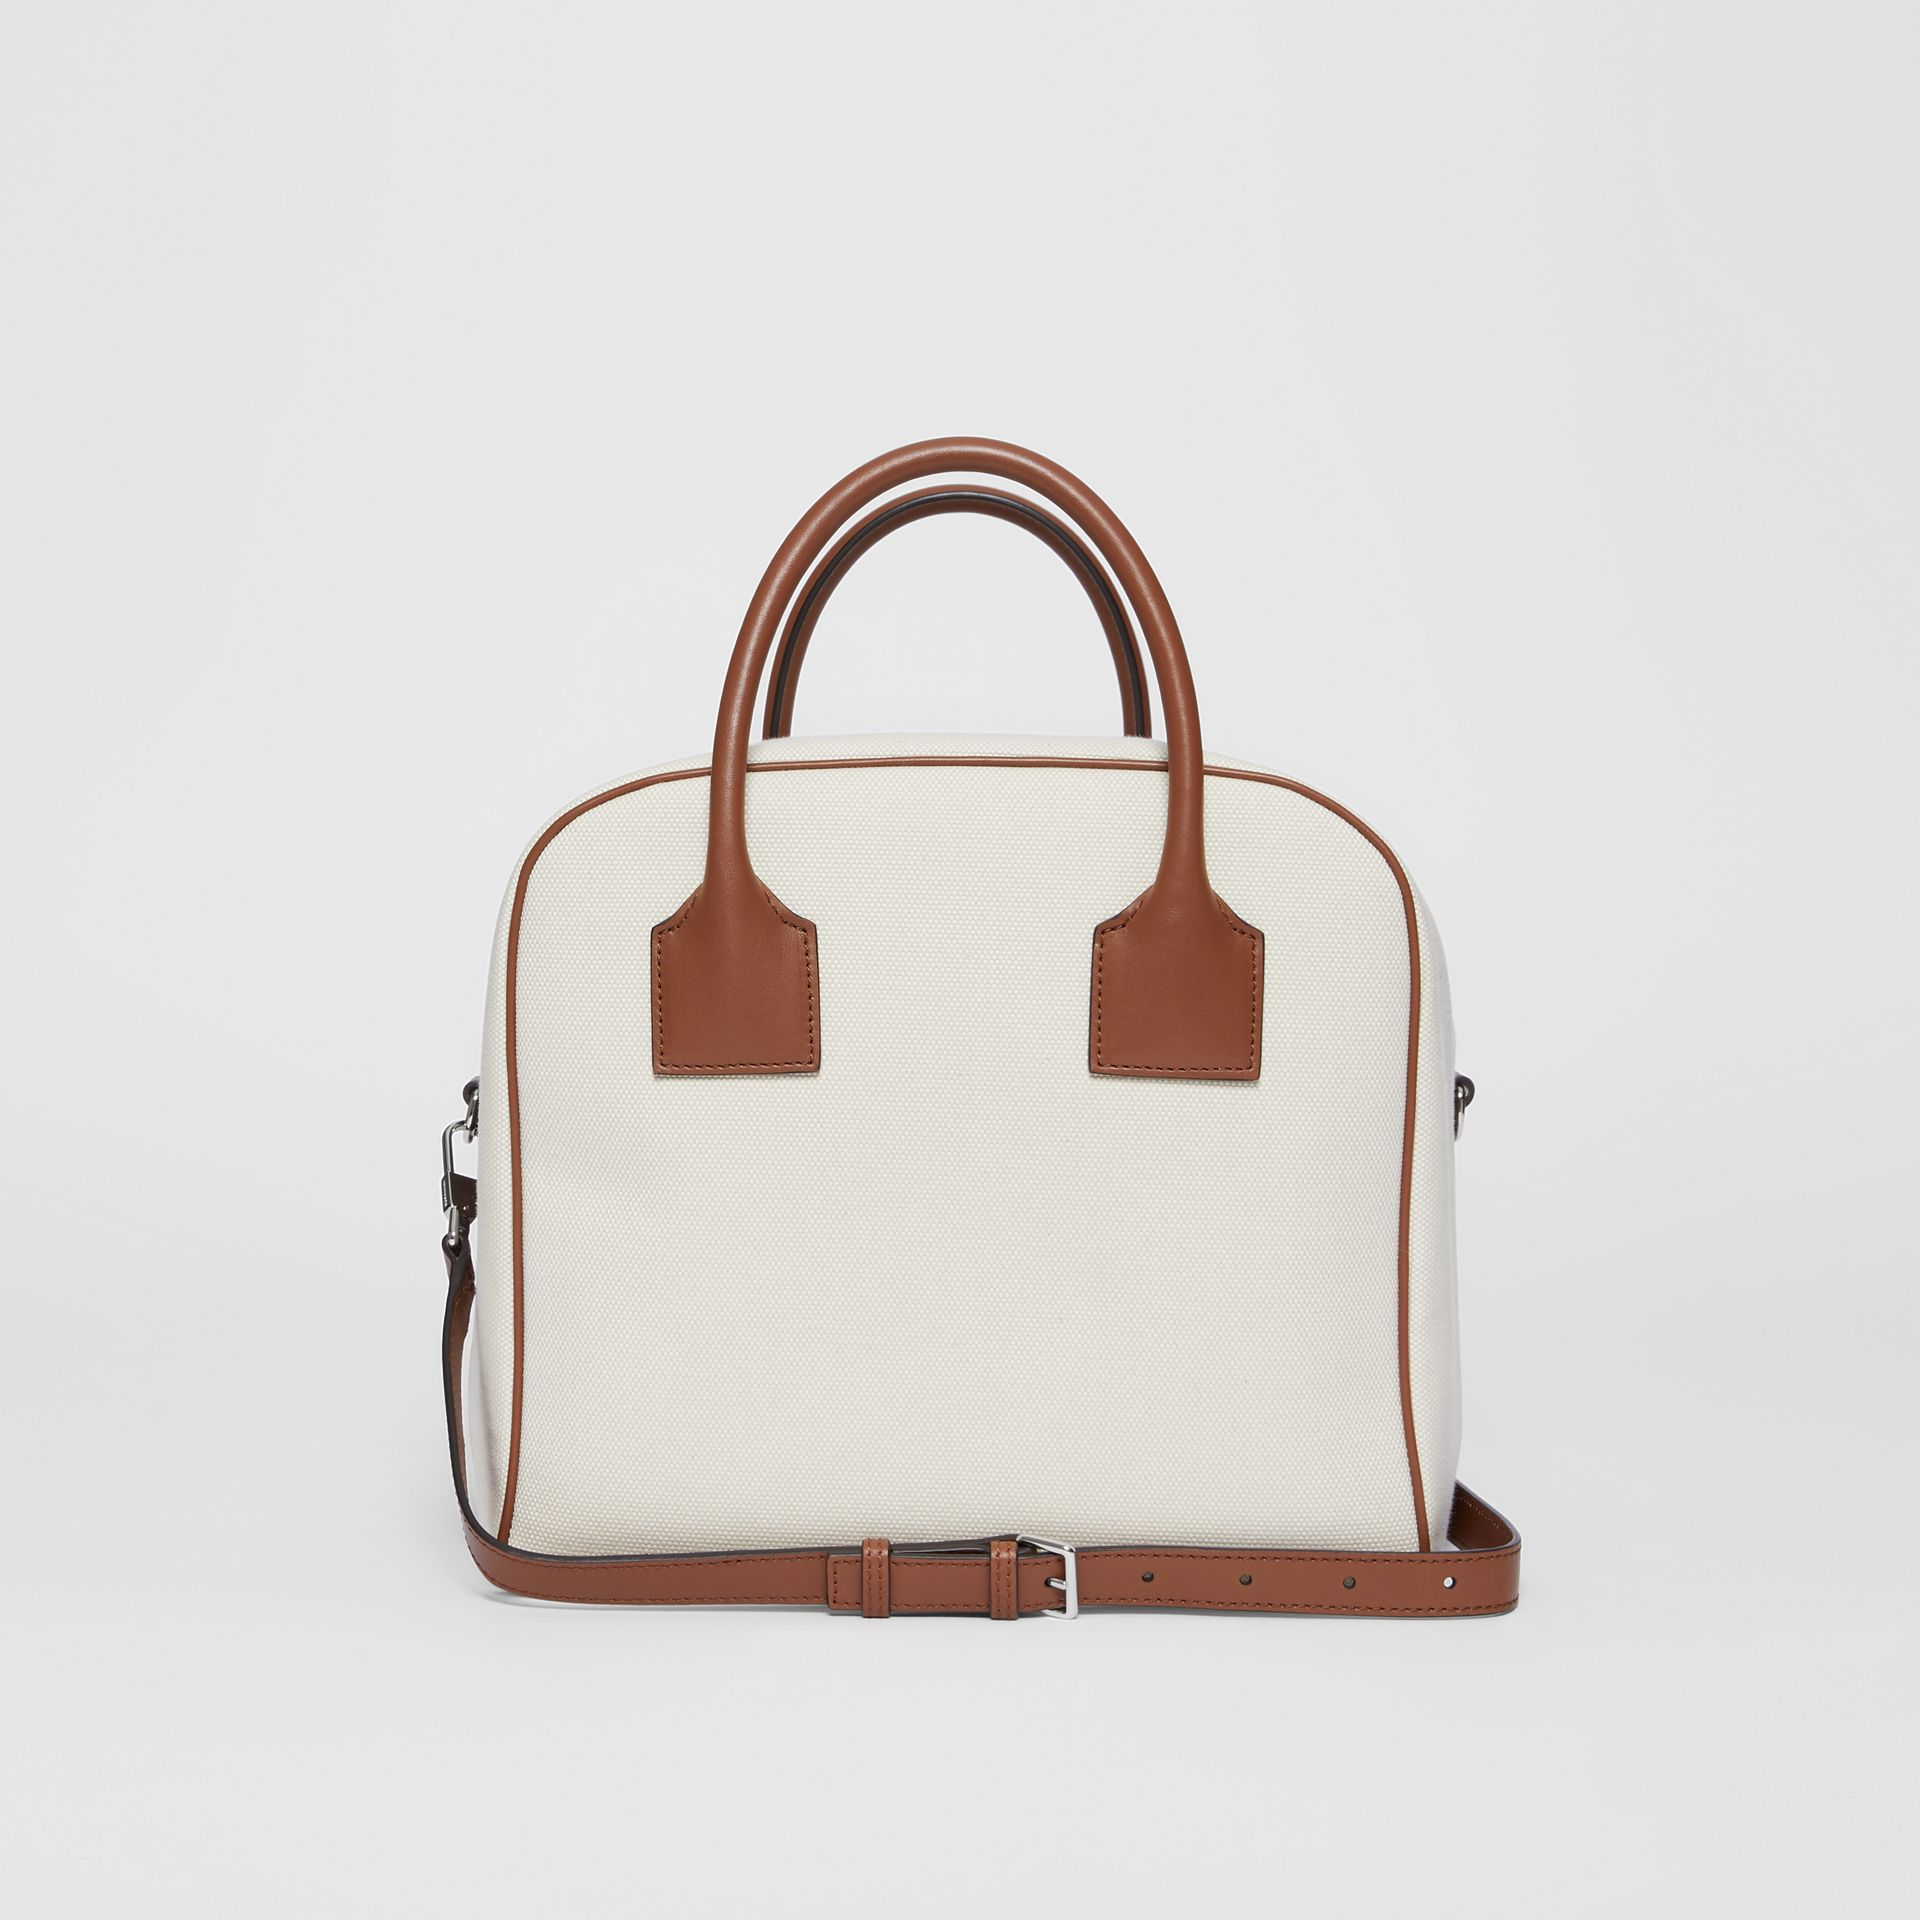 Medium Horseferry Print Canvas Cube Bag in Natural/malt Brown - Women | Burberry - gallery image 8